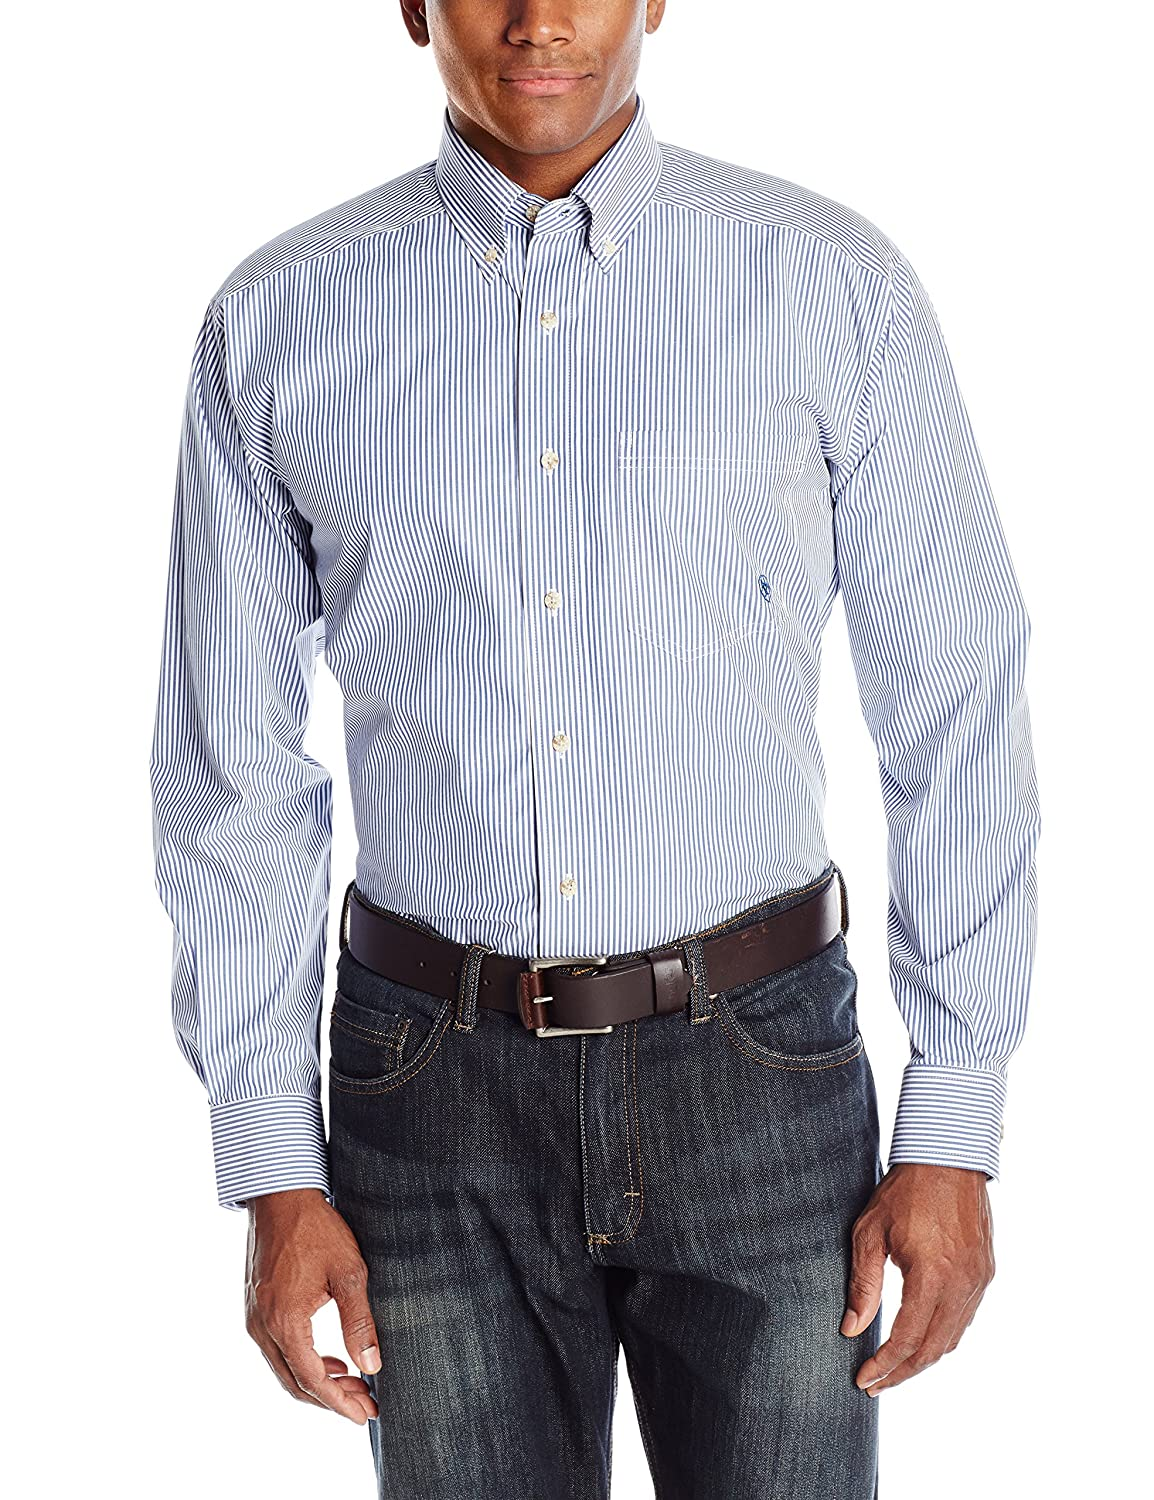 Ariat Mens Big and Tall Classic Fit Long Sleeve Button Down Shirt